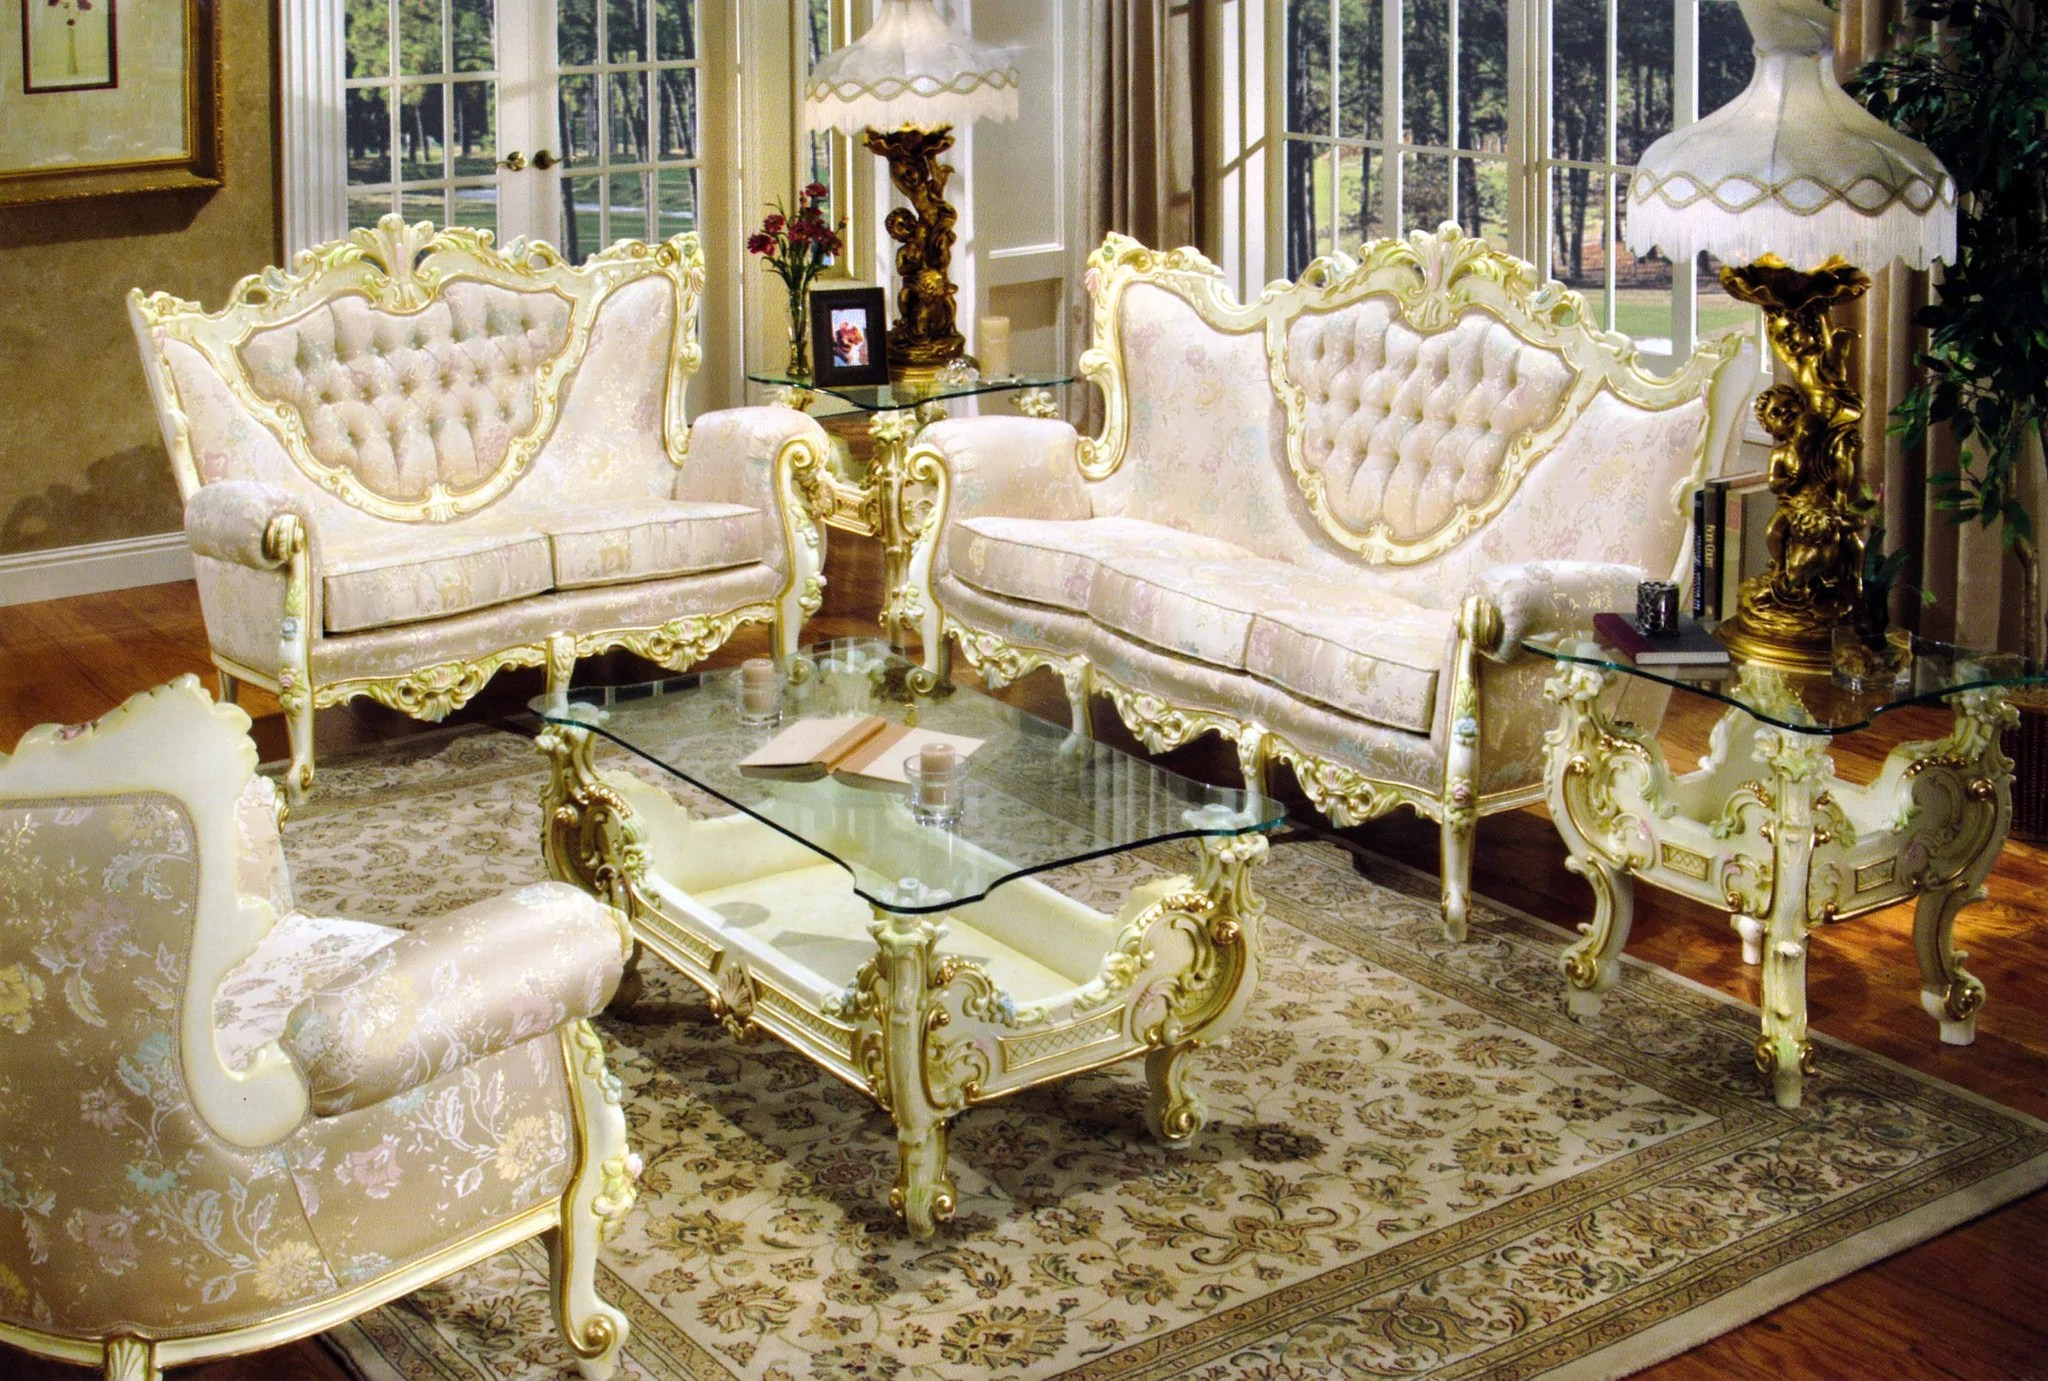 Only Muebles Pol Rey Muebles Style Three Gallery Furniture Of Central Florida